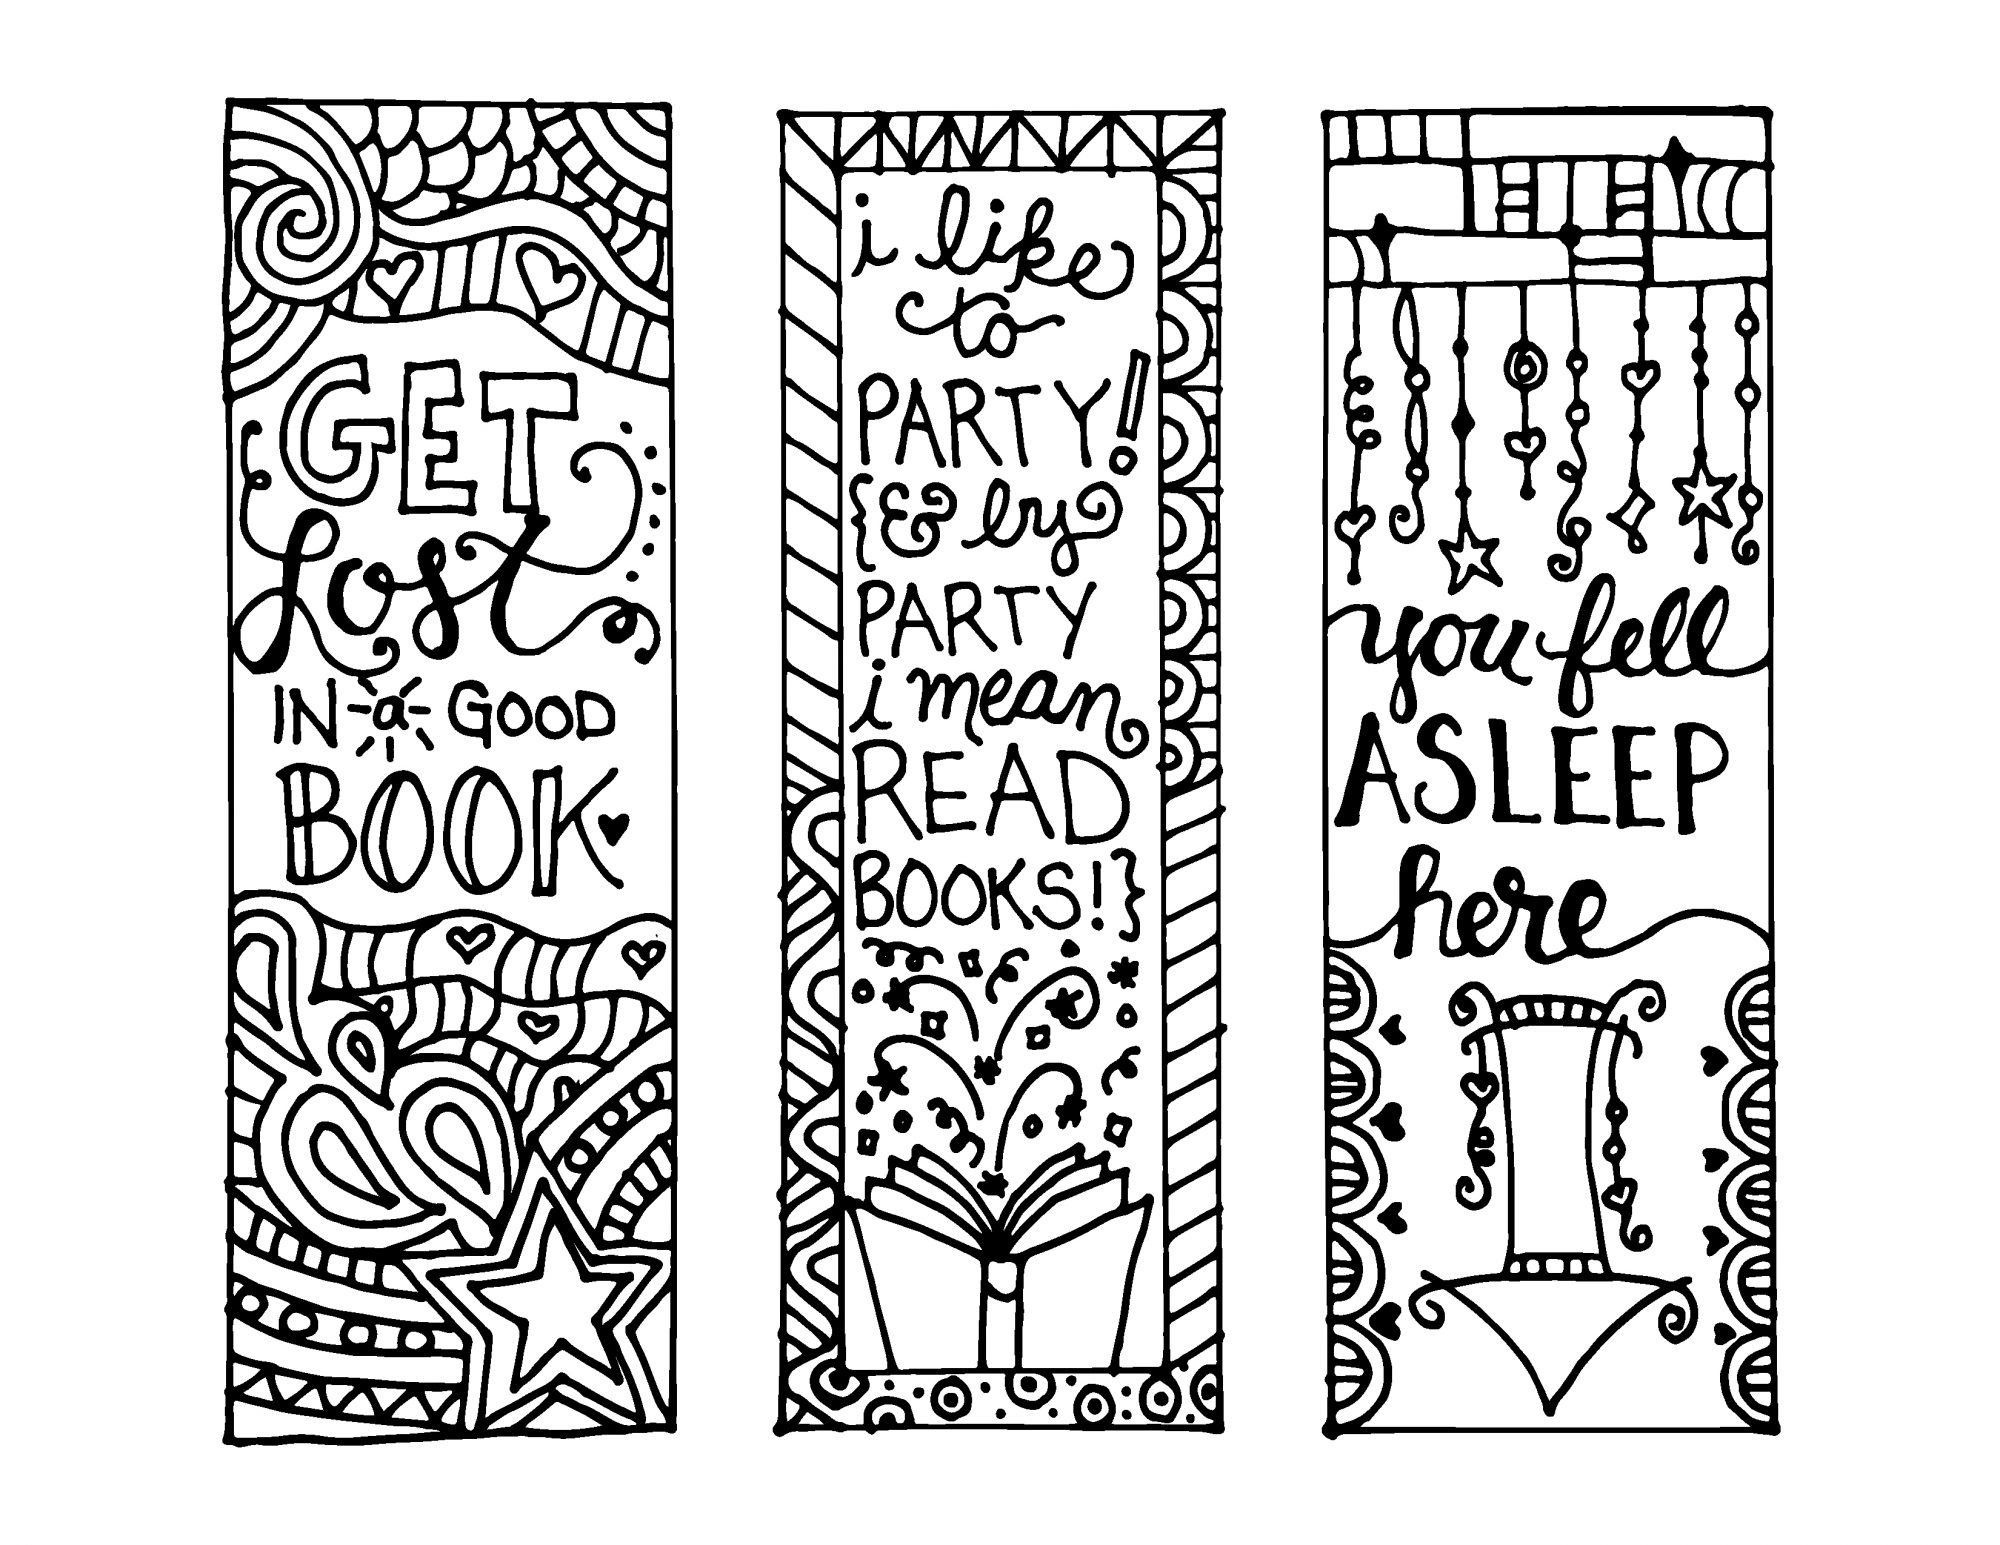 Free Printable Reading Bookmarks Black And White | Activity Shelter - Free Printable Christmas Bookmarks To Color